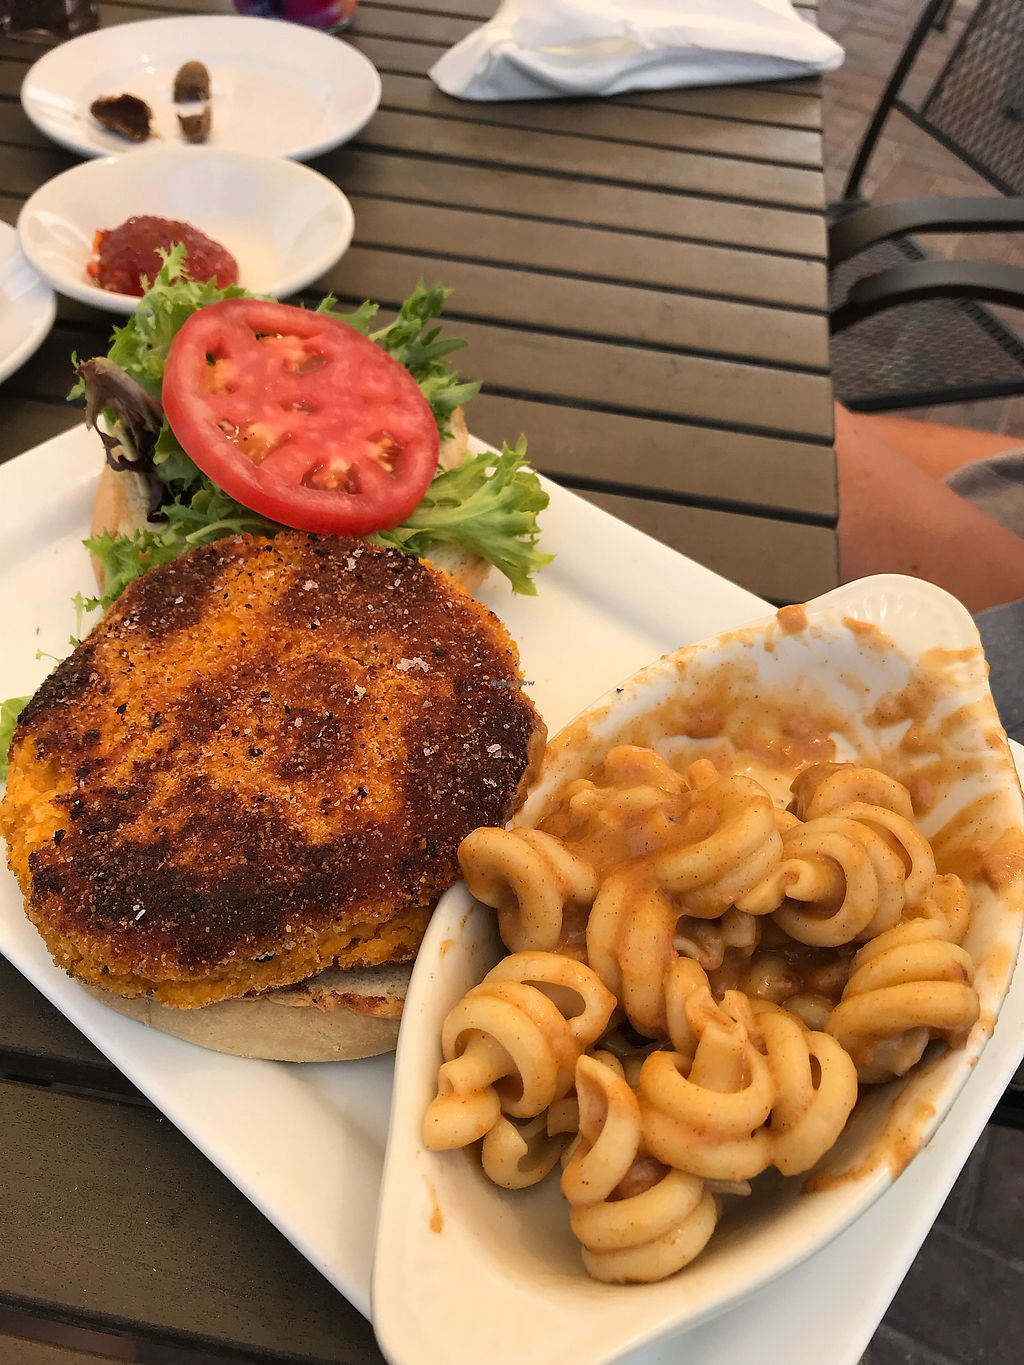 "Photo of Ballyhoo's  by <a href=""/members/profile/veg4good"">veg4good</a> <br/>Sweet potato burger with side Vegan Mac and cheese  <br/> March 21, 2018  - <a href='/contact/abuse/image/39209/373981'>Report</a>"